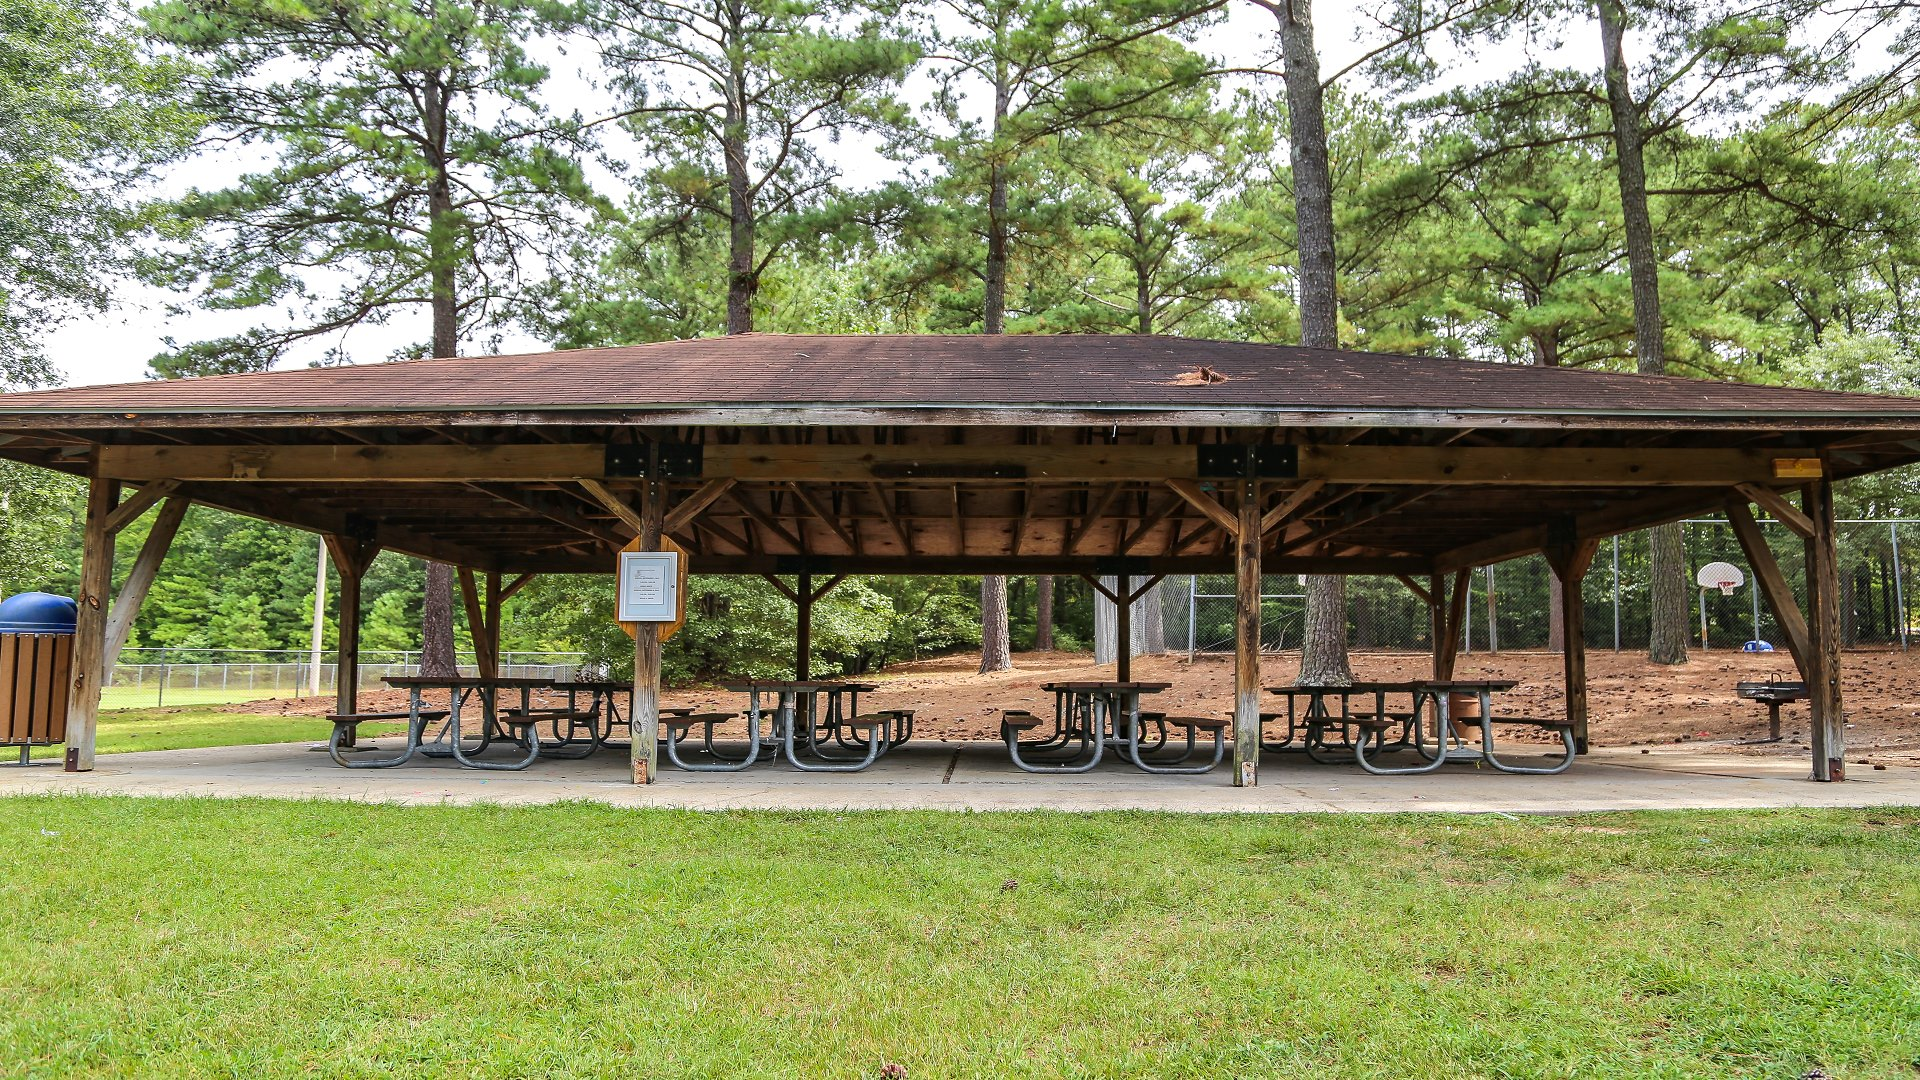 Outdoor picnic shelter with eight tables at Biltmore Hills Park